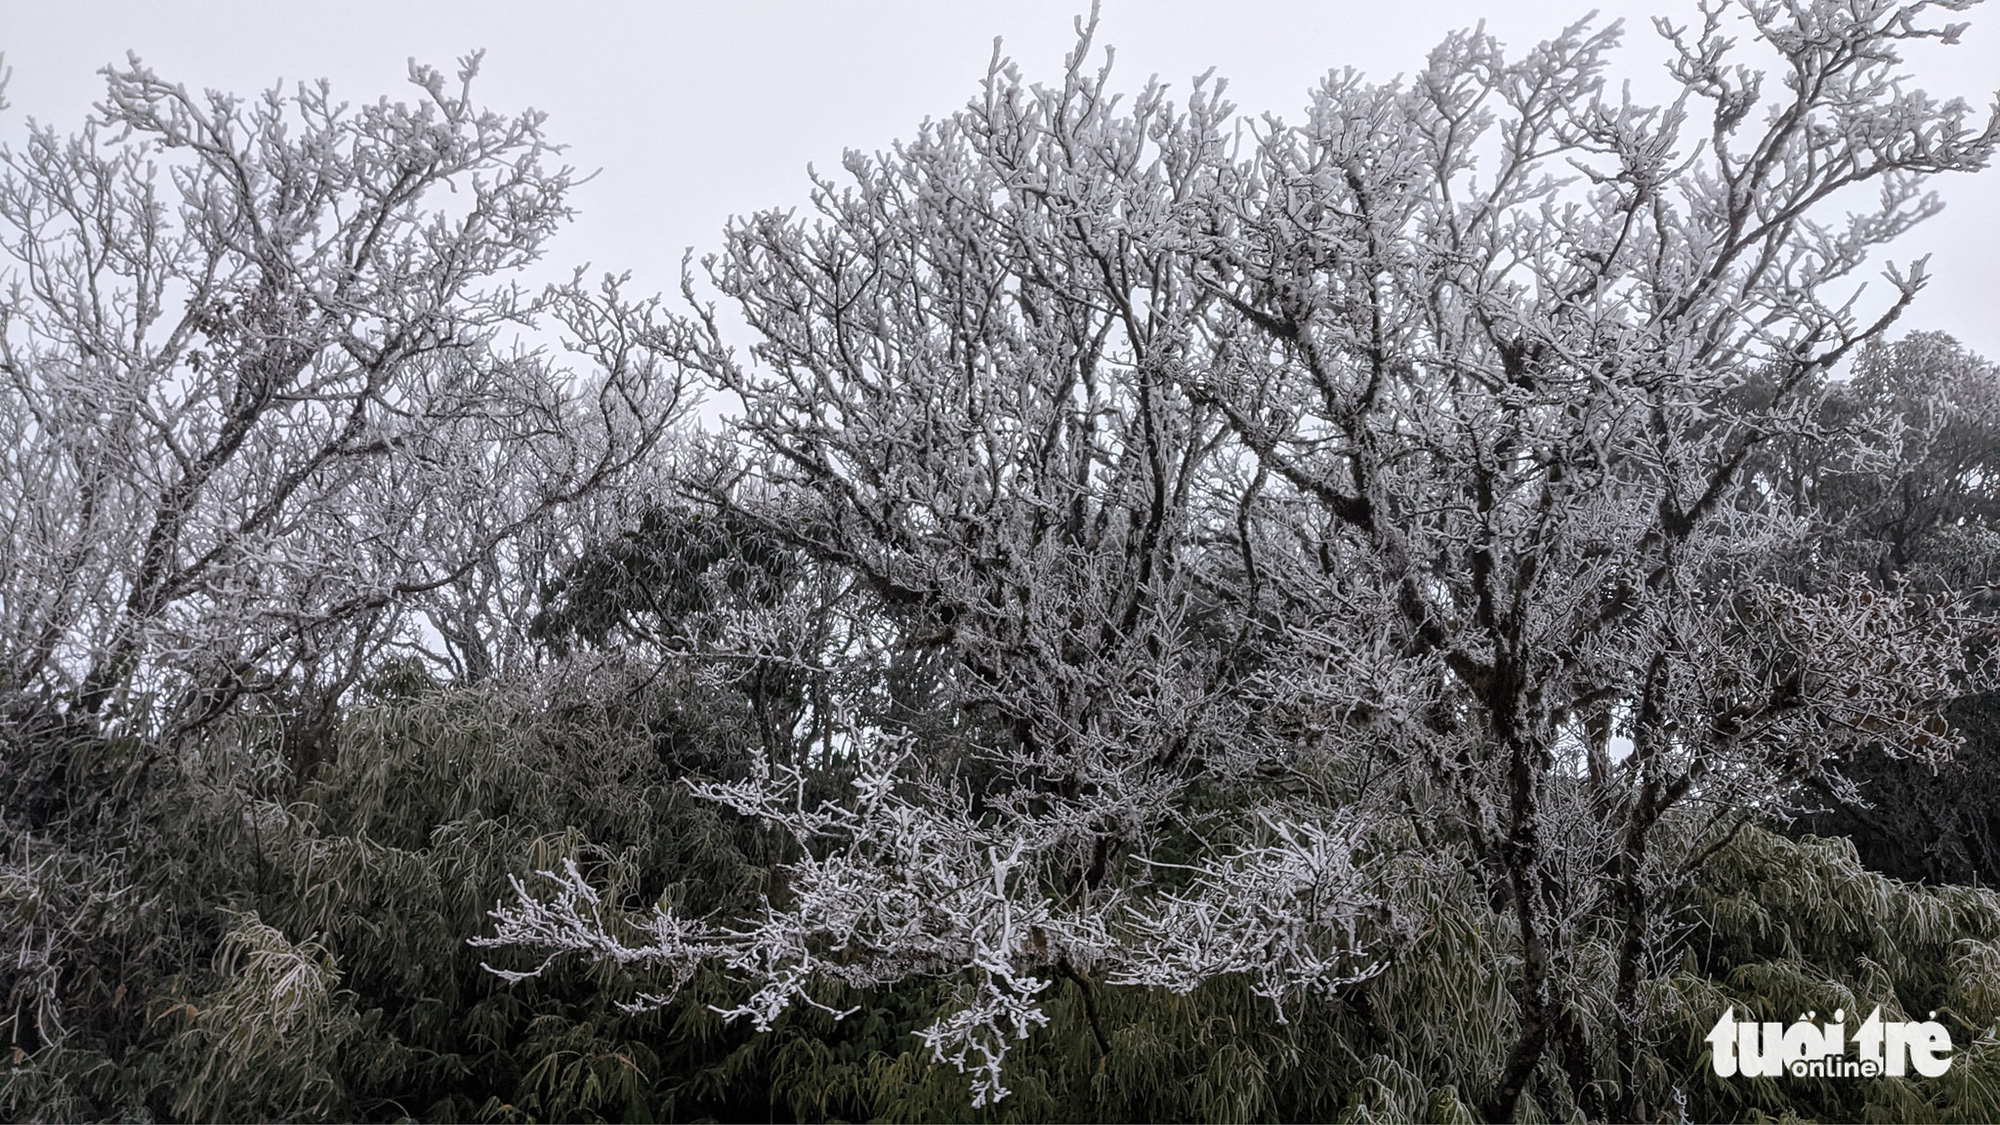 Frost covers northern Vietnamese mountains as temperature dips below 0 degrees Celsius